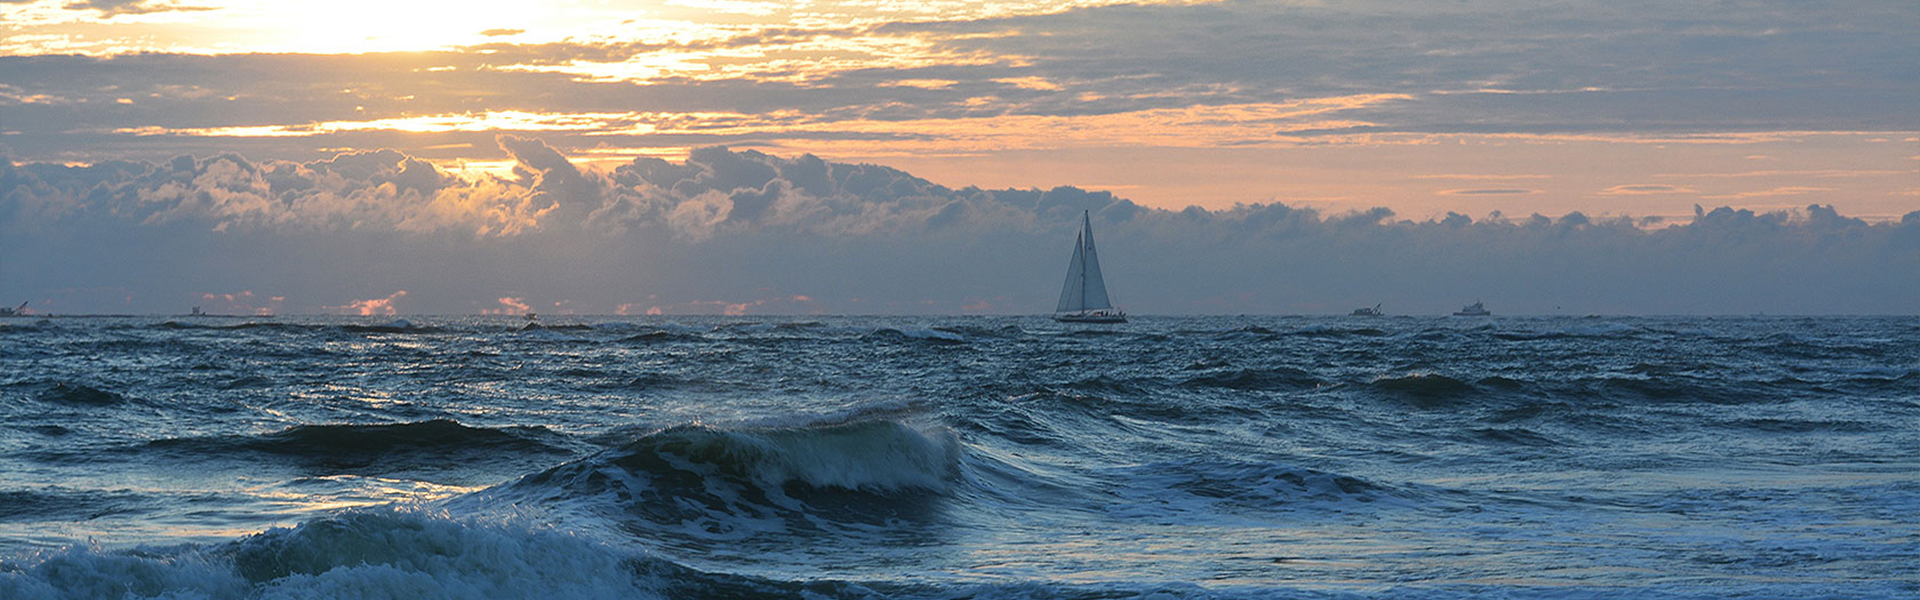 Vast ocean with sailboat in the distance